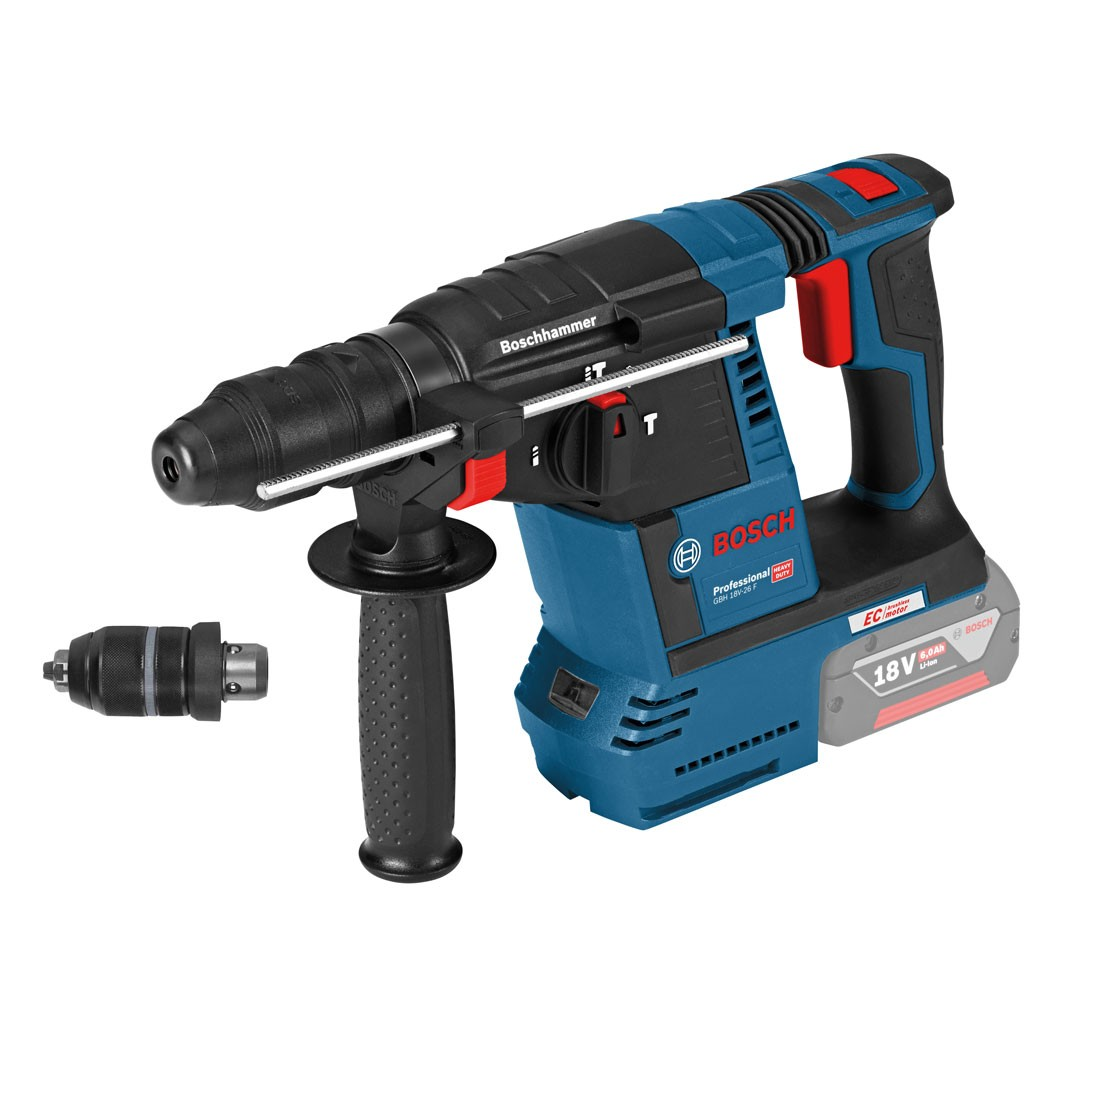 bosch gbh 18 v 26 f sds plus brushless rotary hammer body only inc qcc 0611910000 powertool world. Black Bedroom Furniture Sets. Home Design Ideas